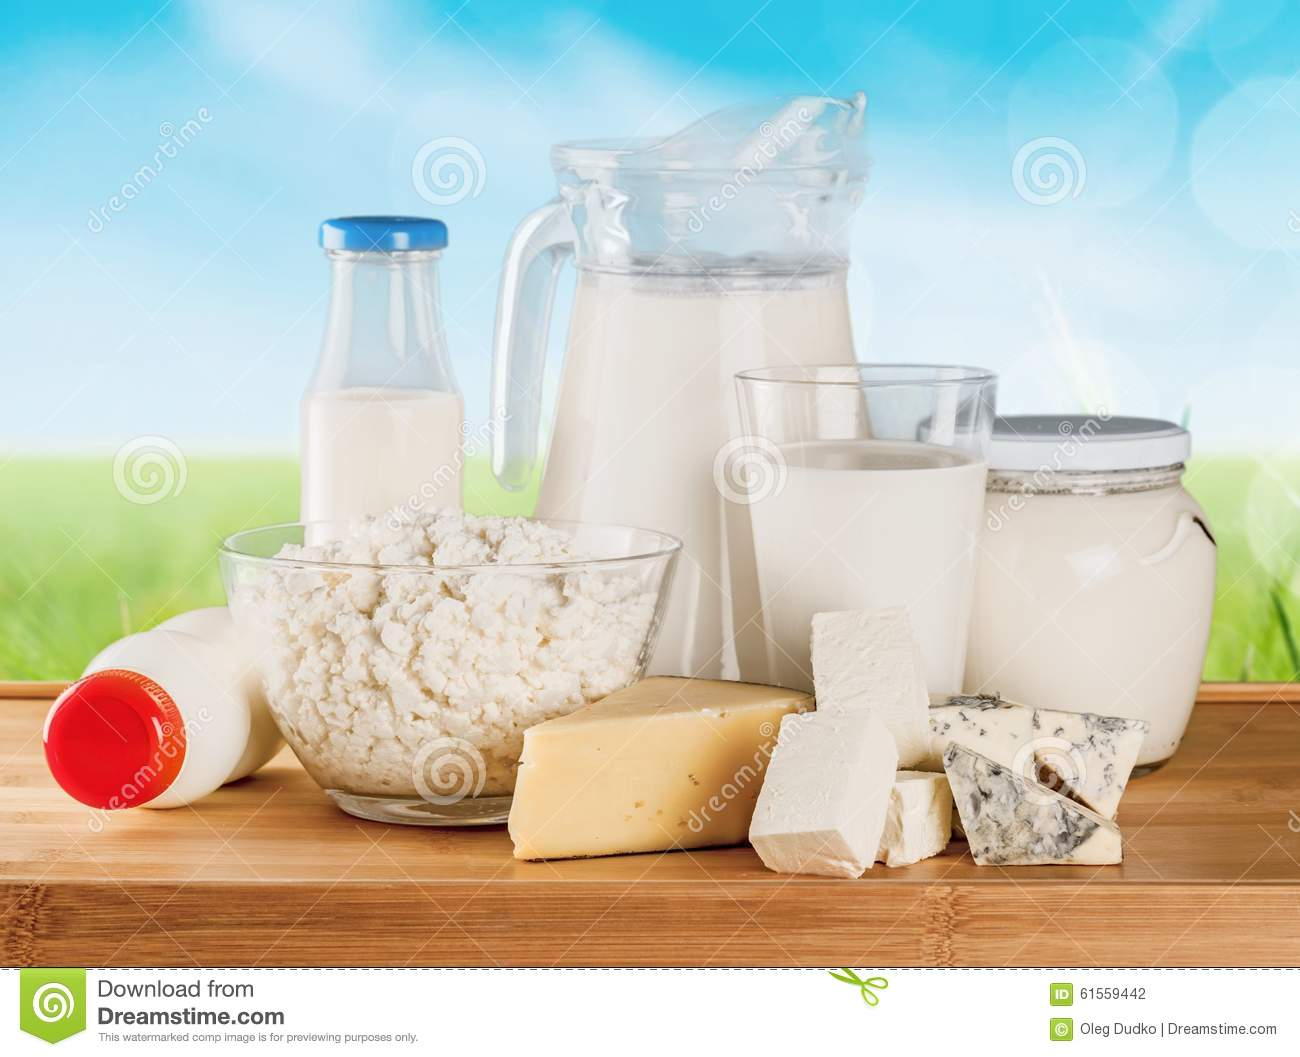 Milk products stock photo. Image of yogurt, cream, group ...